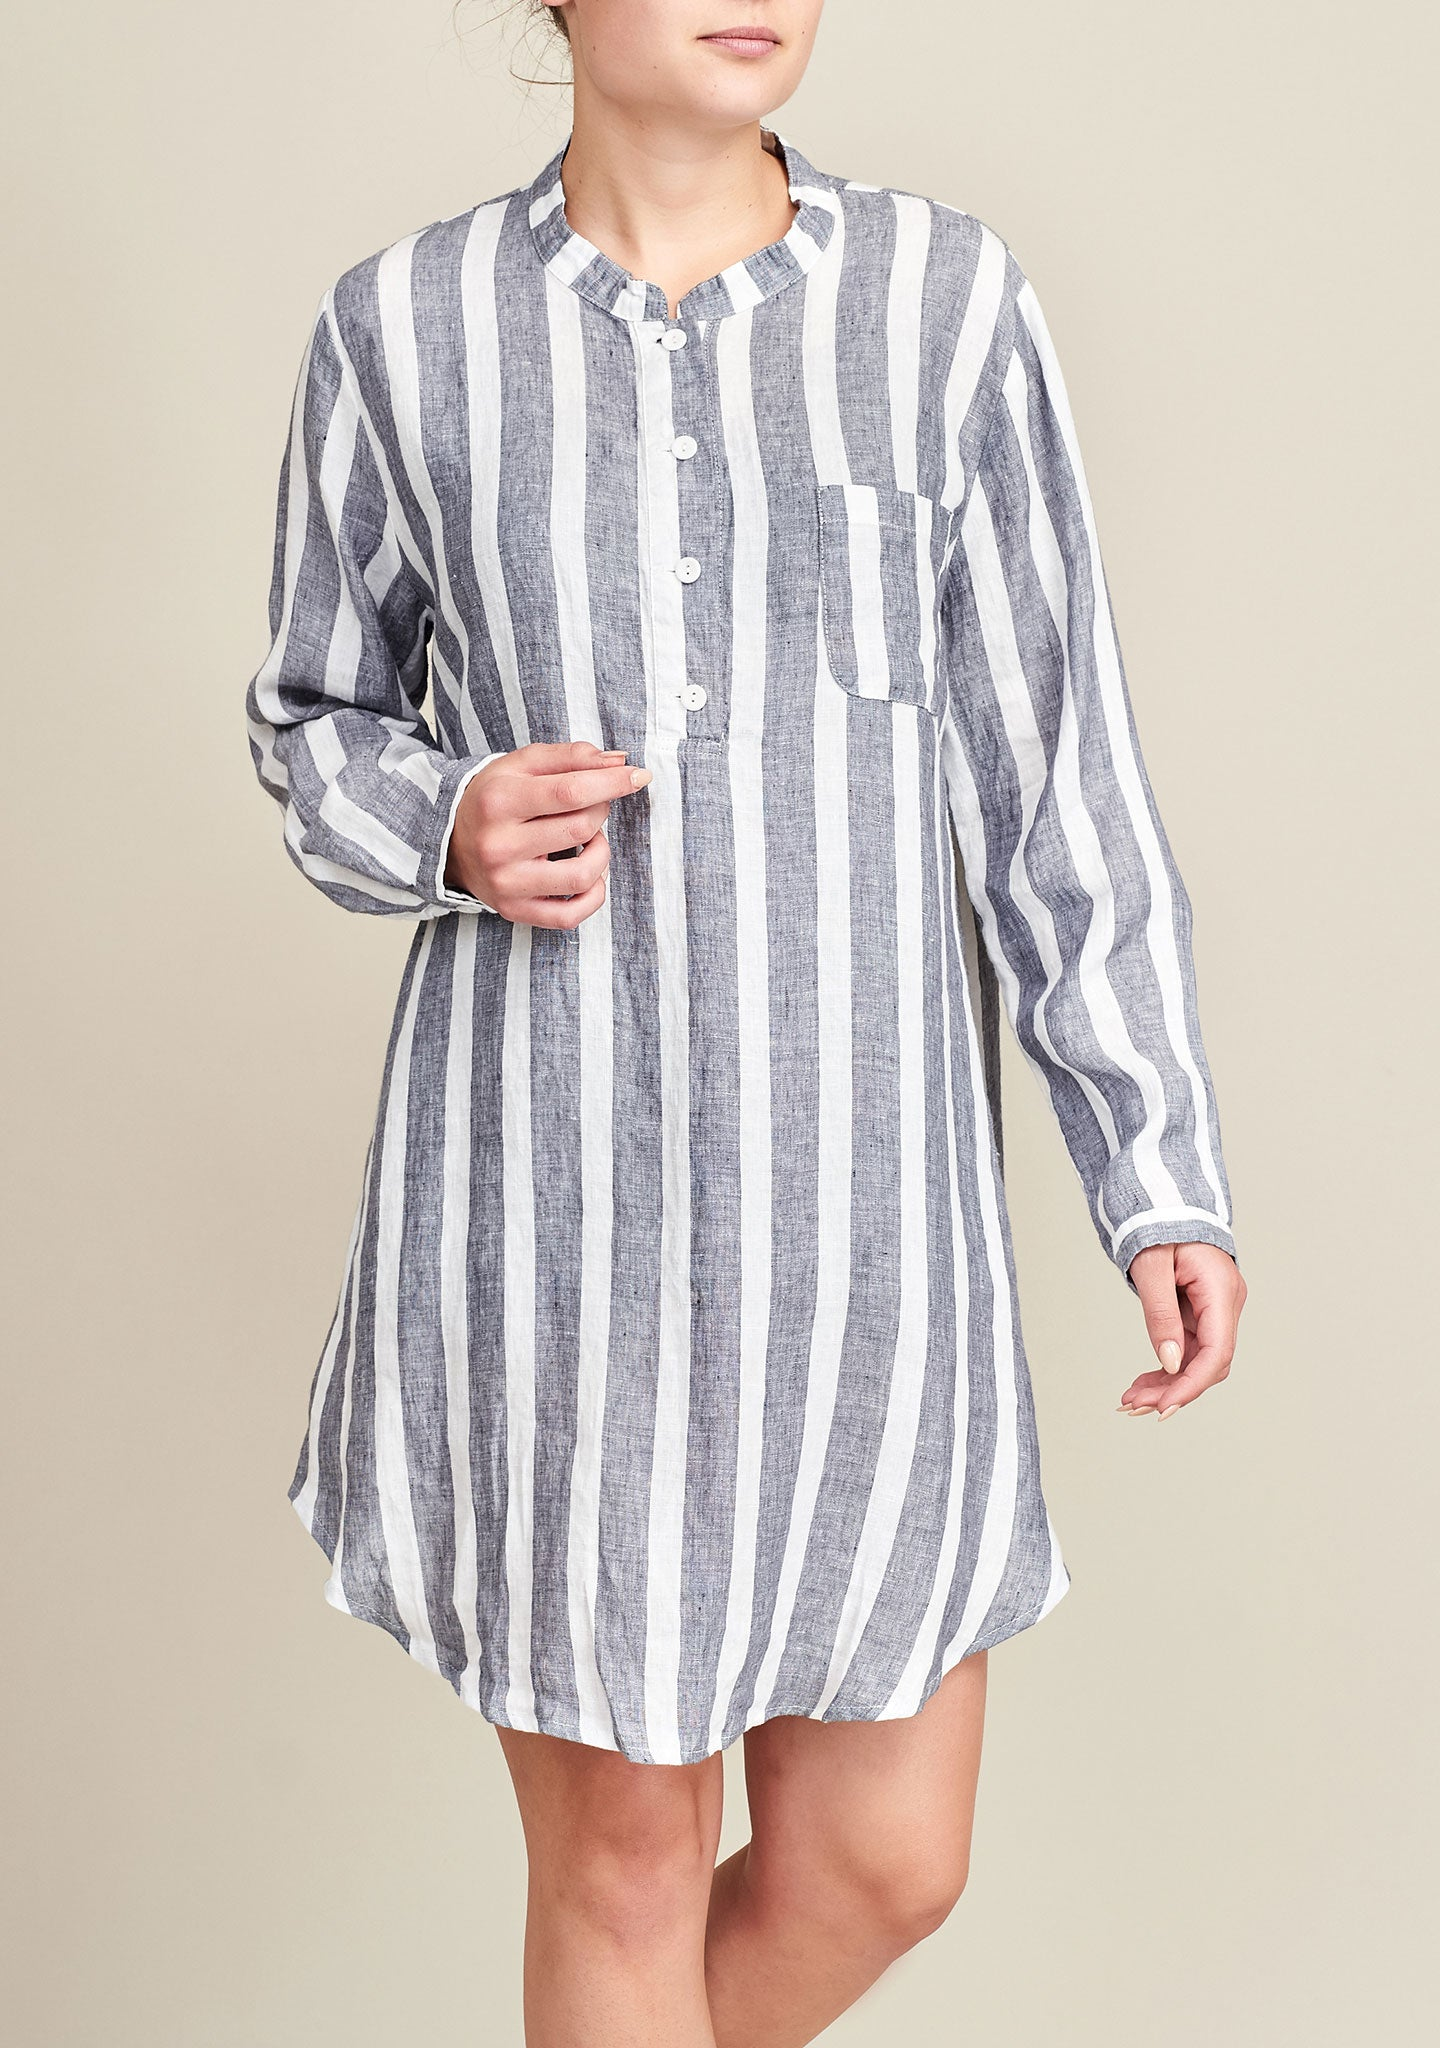 nightshirt blue